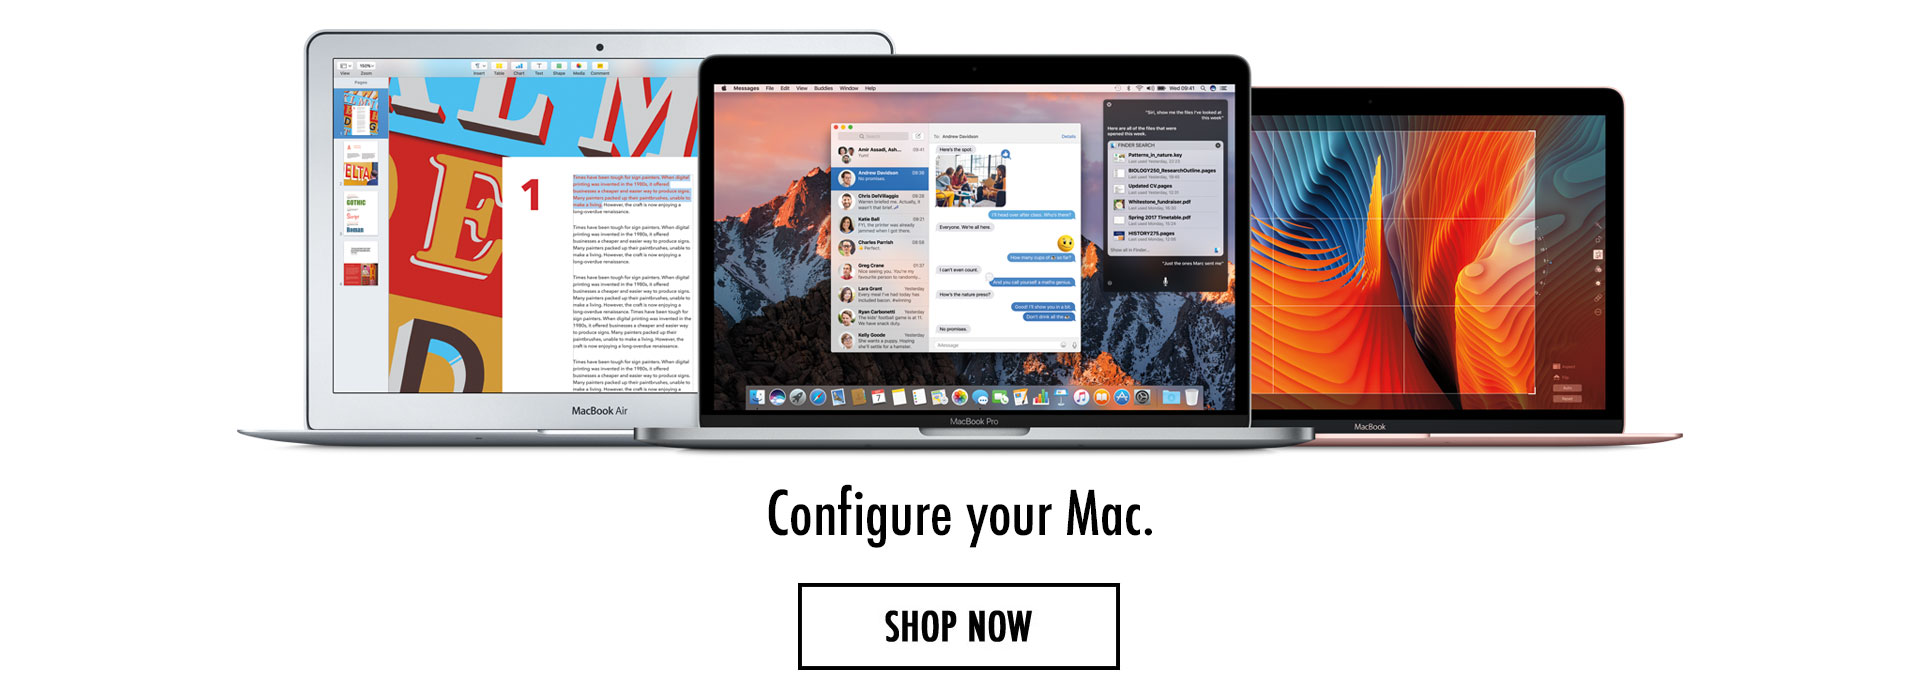 Configure your Mac